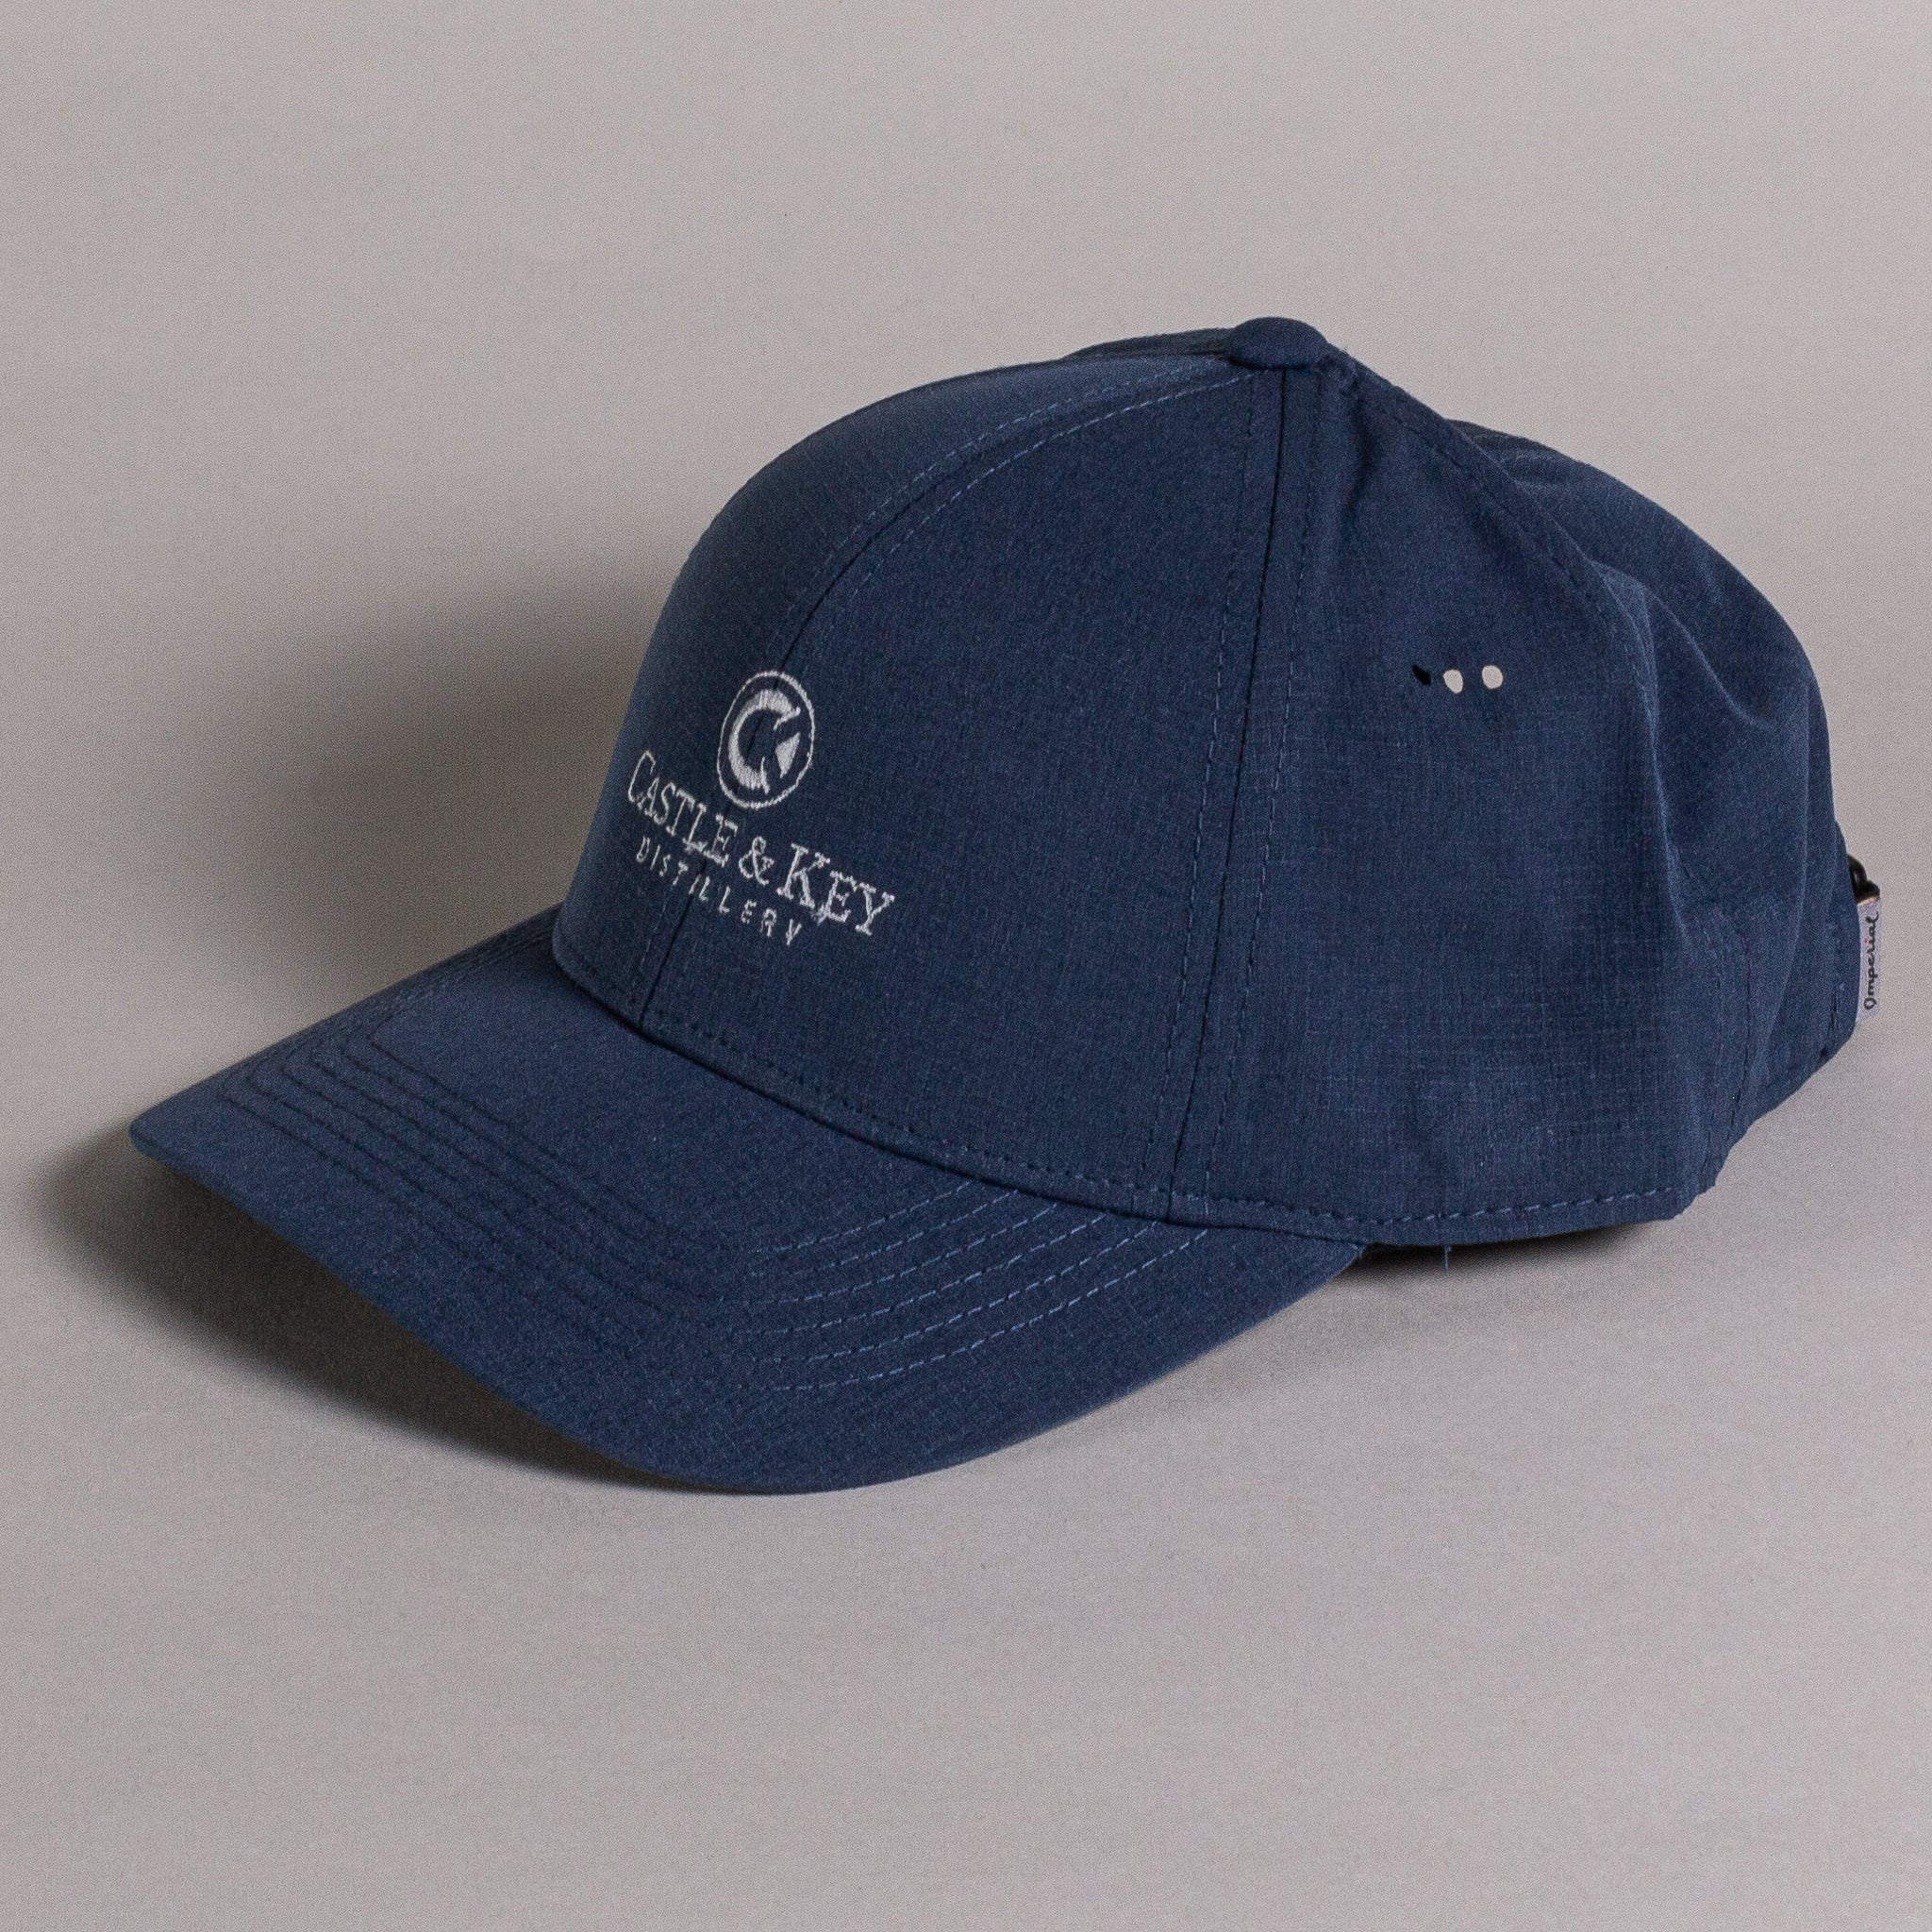 Castle & Key Performance Hat Navy